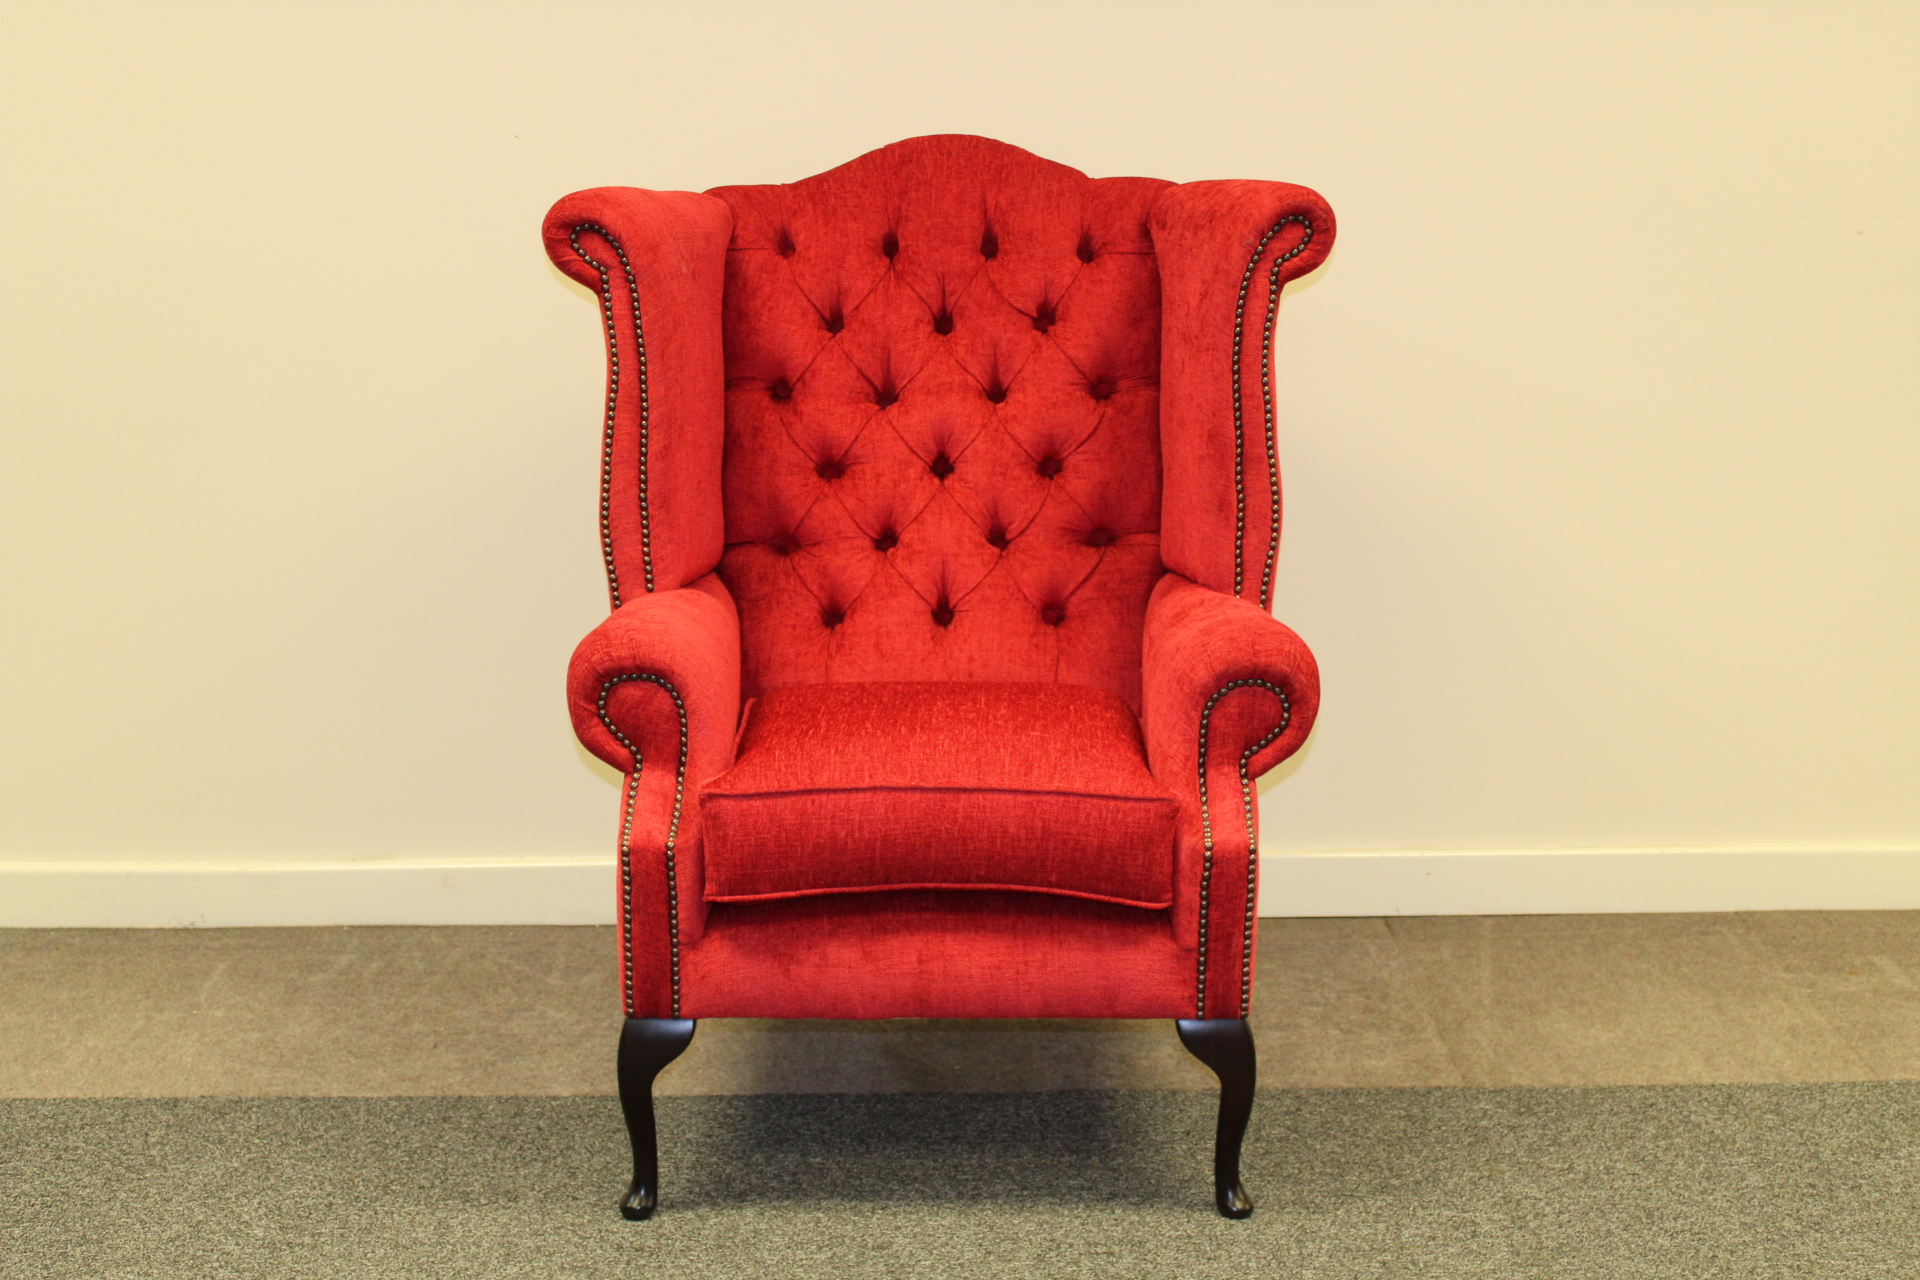 Queen Anne Chair Shipcote Furniture